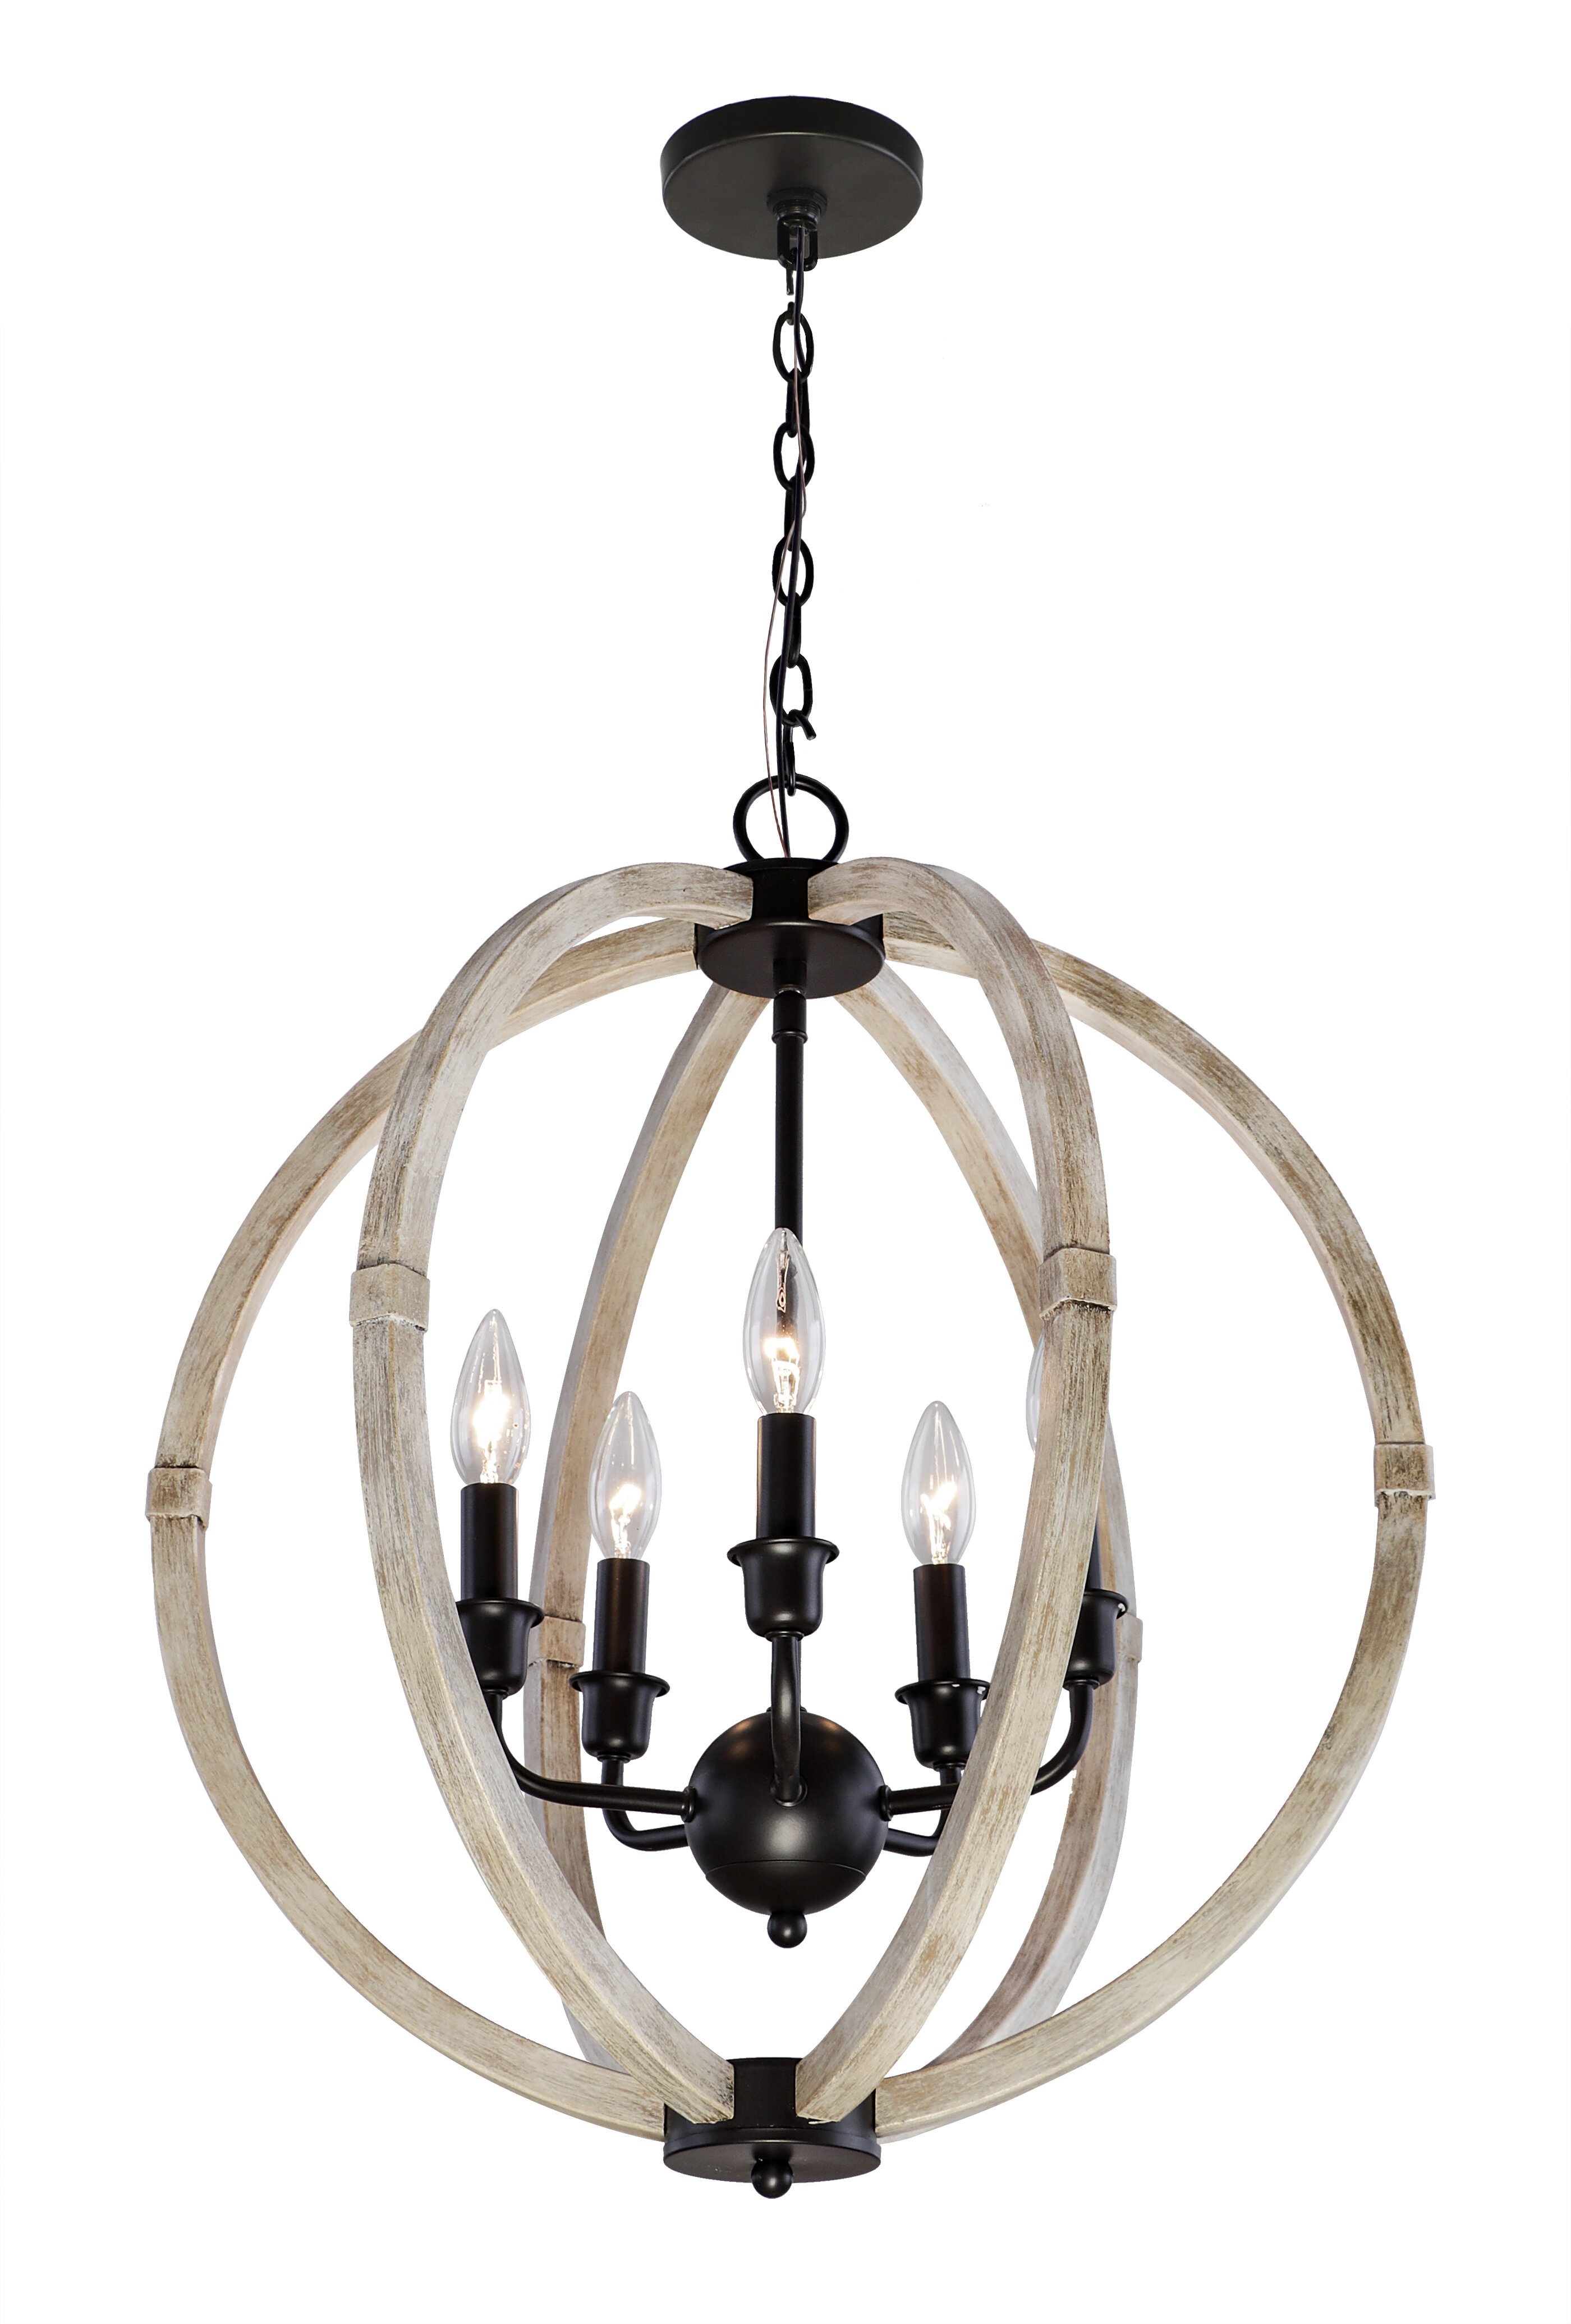 Picture of: Foundry Select Shelby 5 Light Candle Style Globe Chandelier